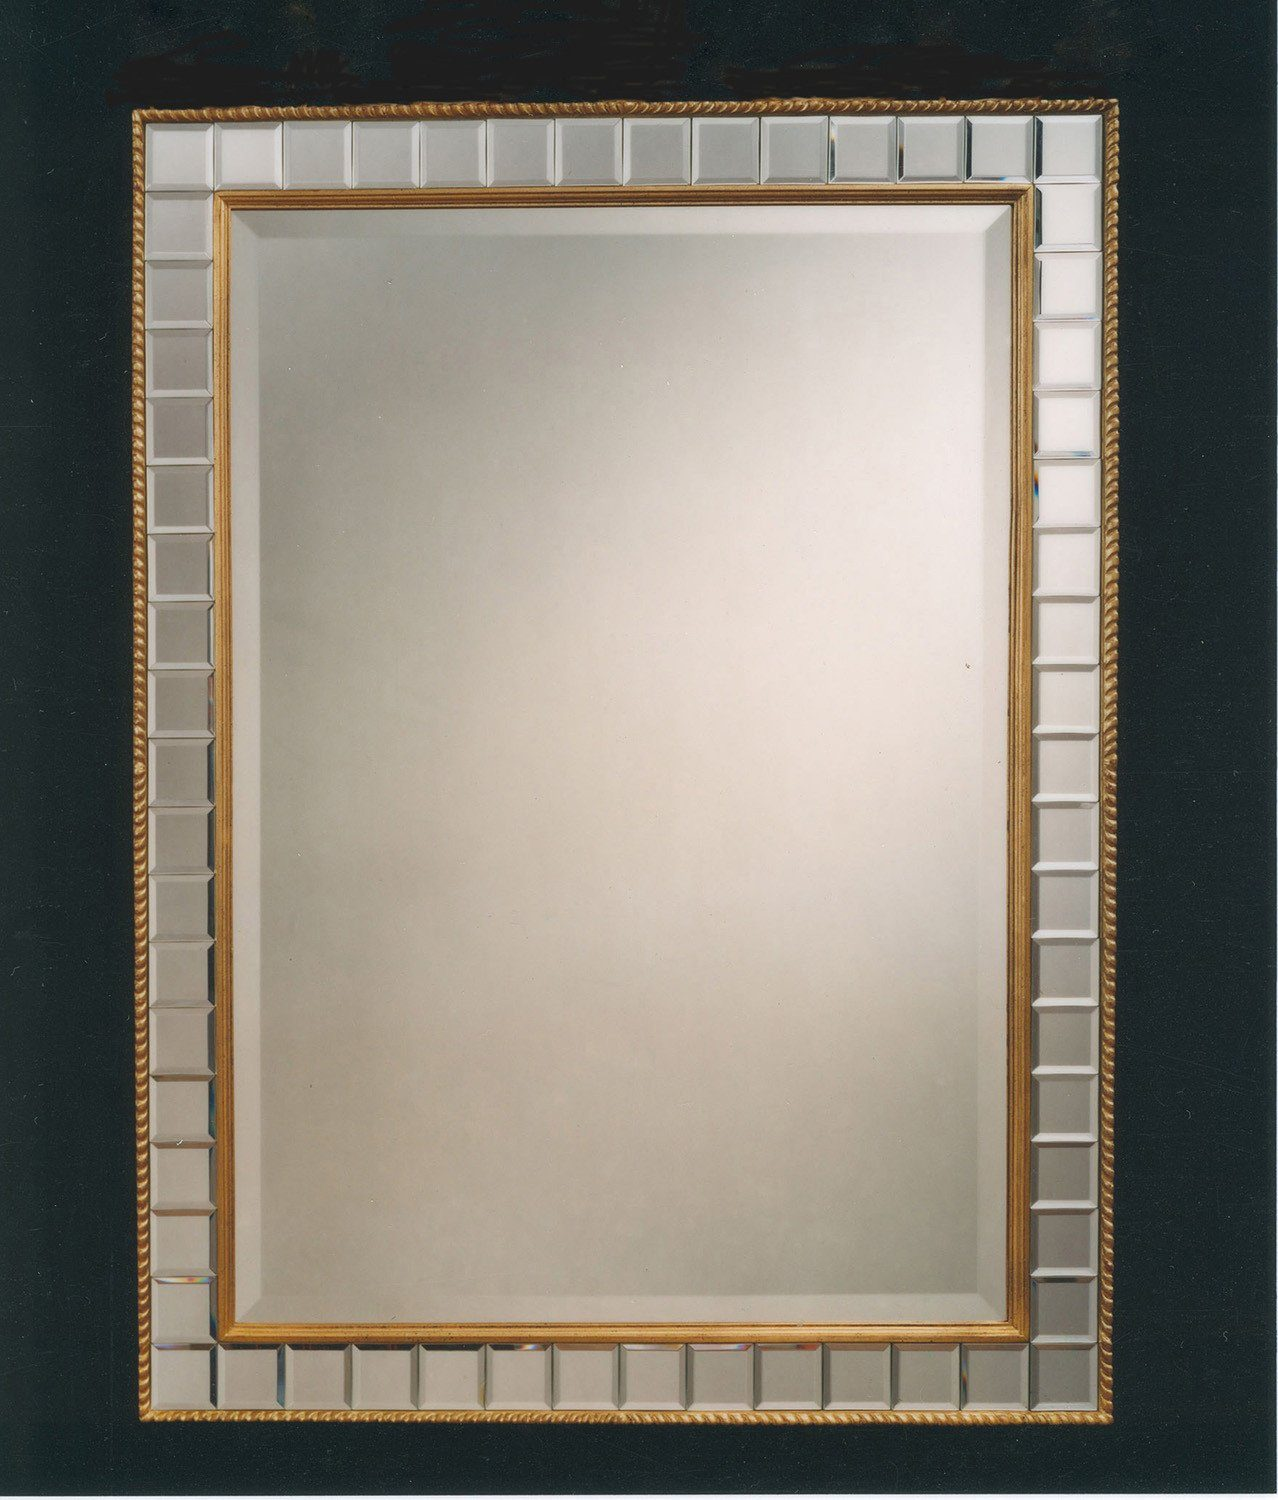 29 X 38 5 Deco Baggett Mirror Beveled Mirror Frame Free Shipping